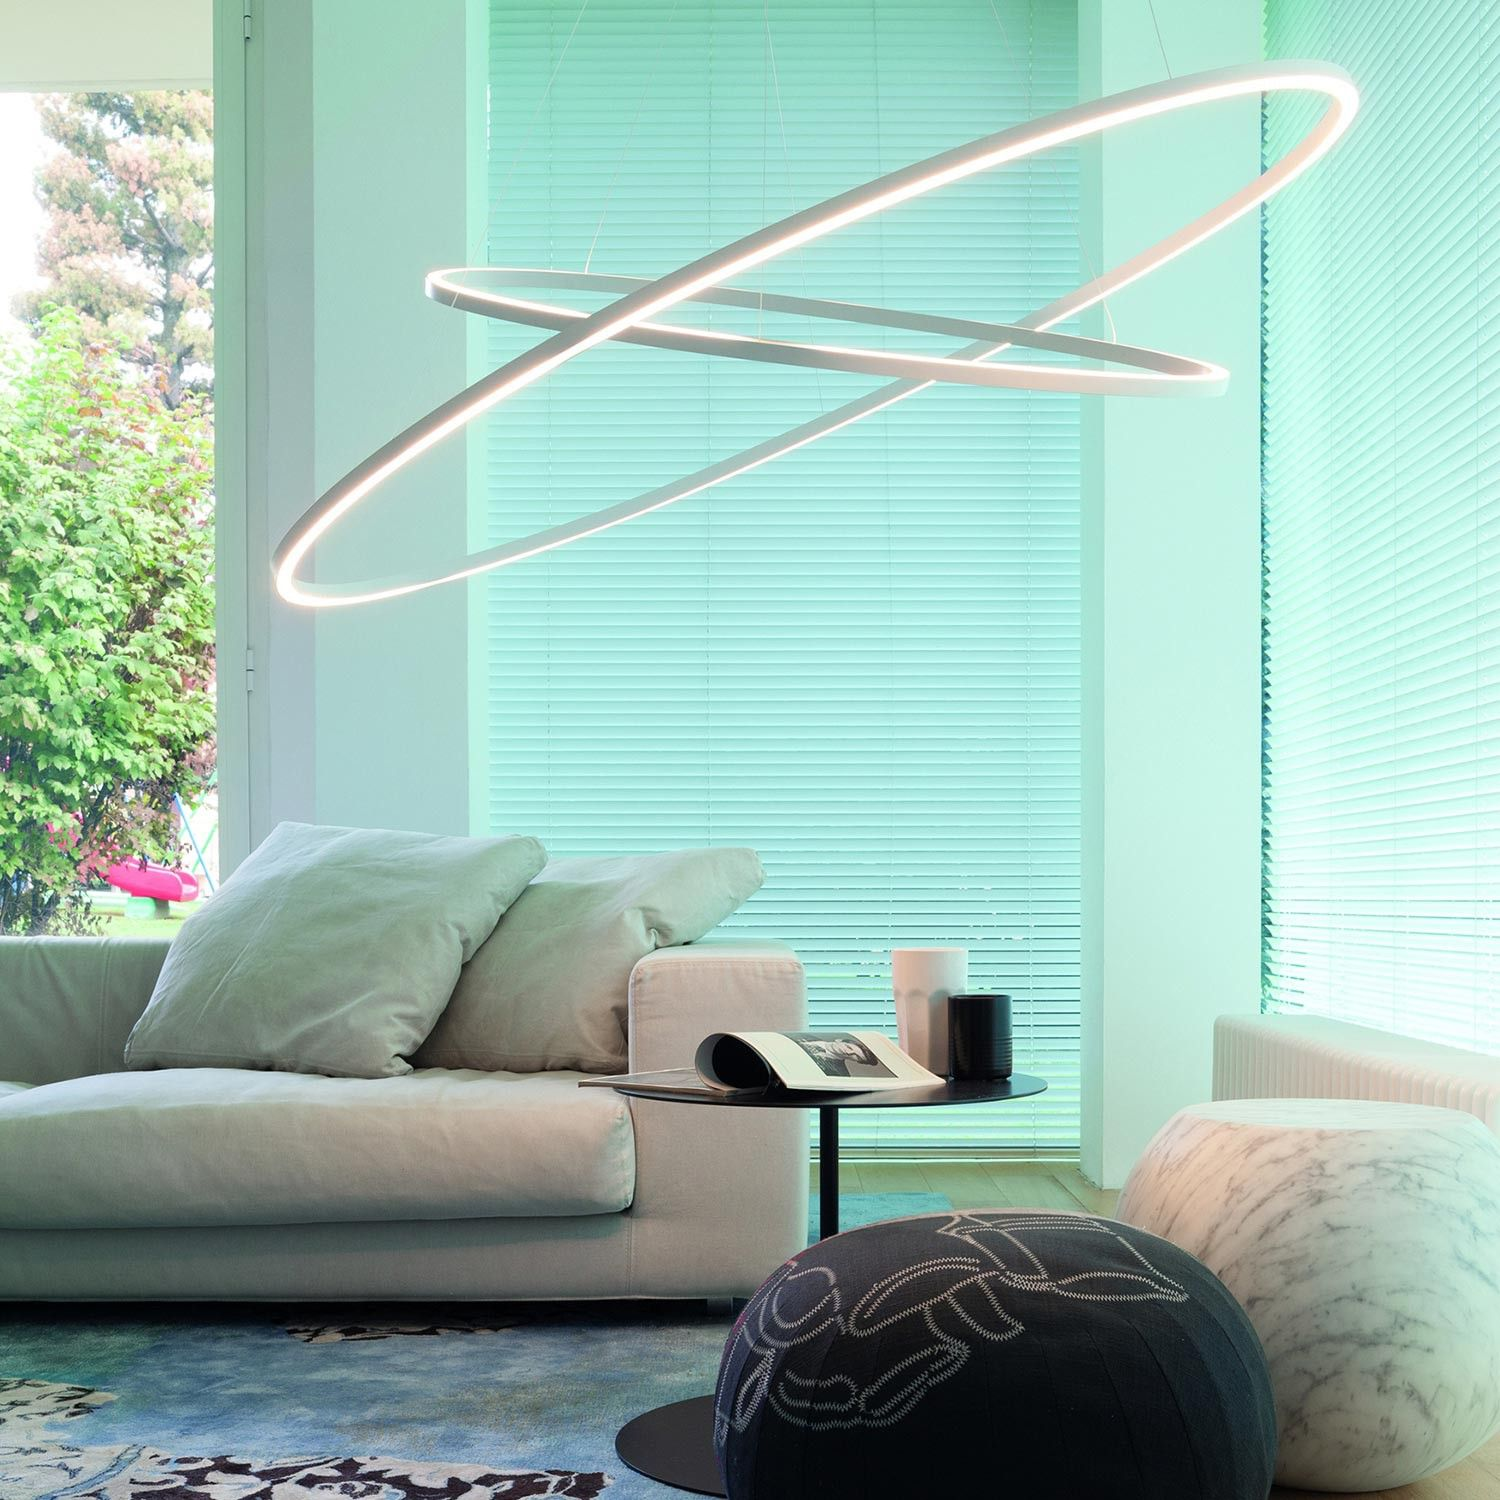 Ellisse Pendant Double LED Pendant Lamp, Available In Three Versions:  Major, Minor And